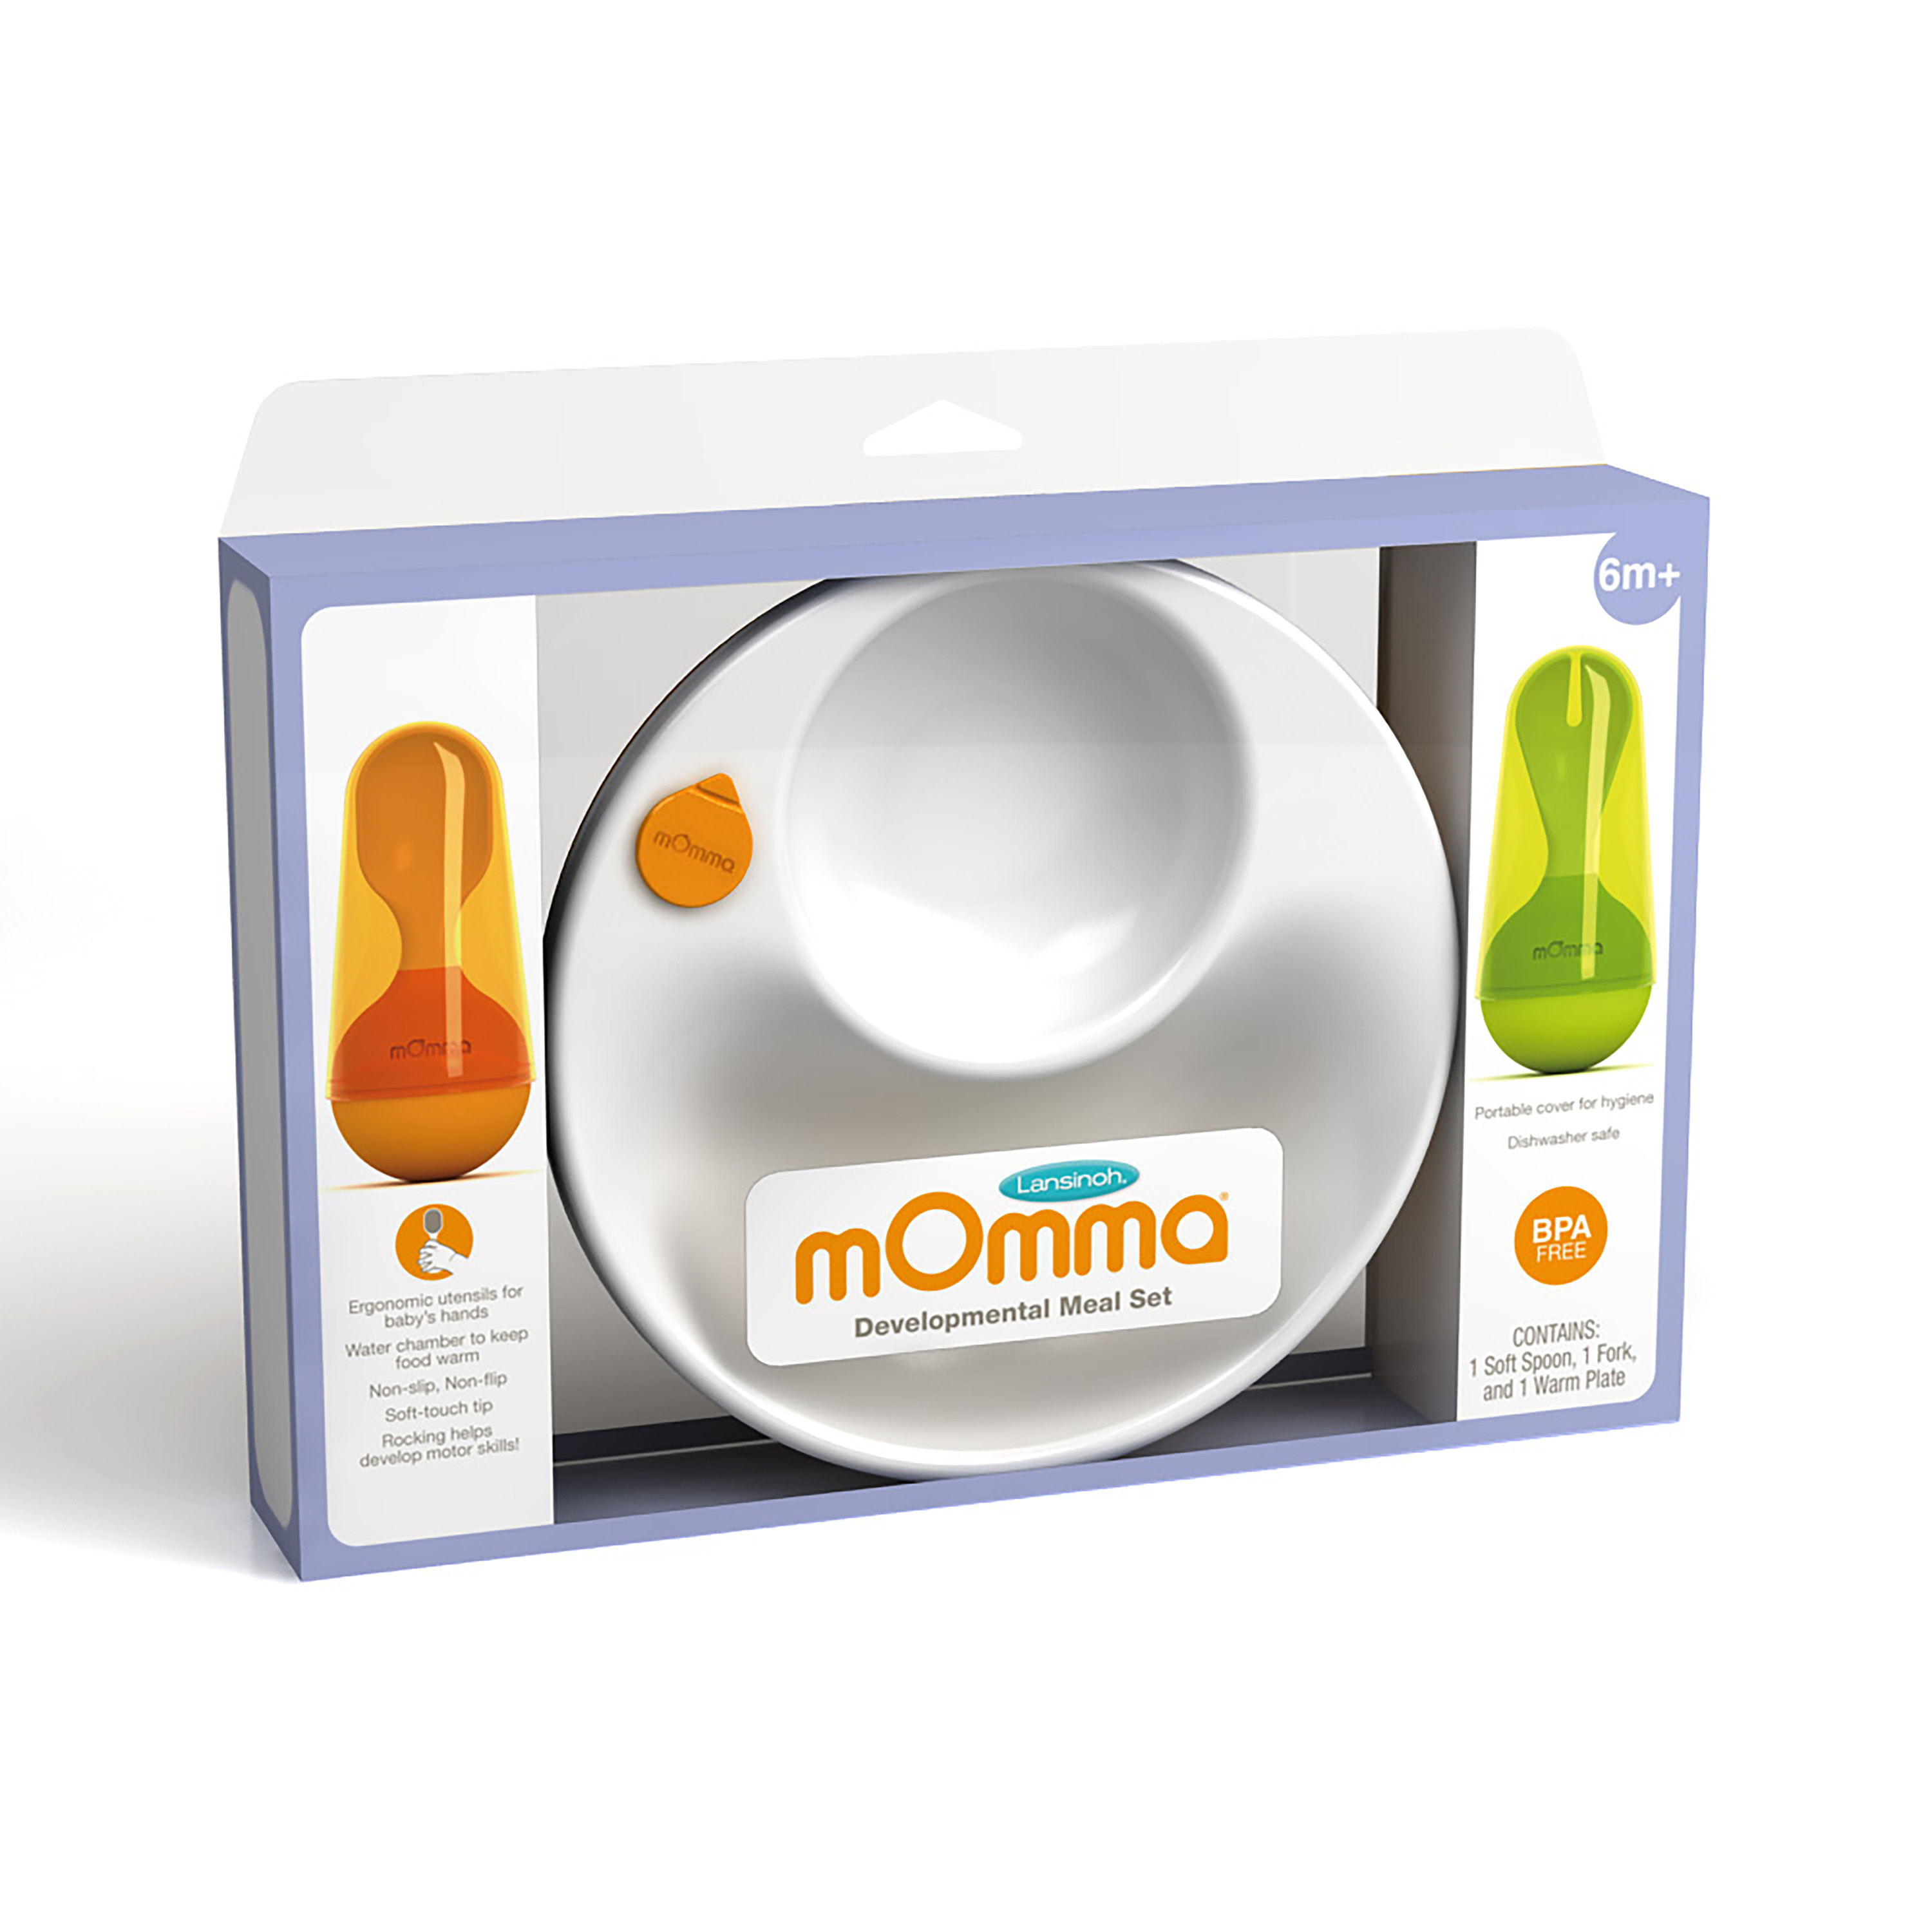 Lansinoh mOmma Developmental Meal Set, 1 Soft Spoon, 1 Fork and 1 Warm Plate